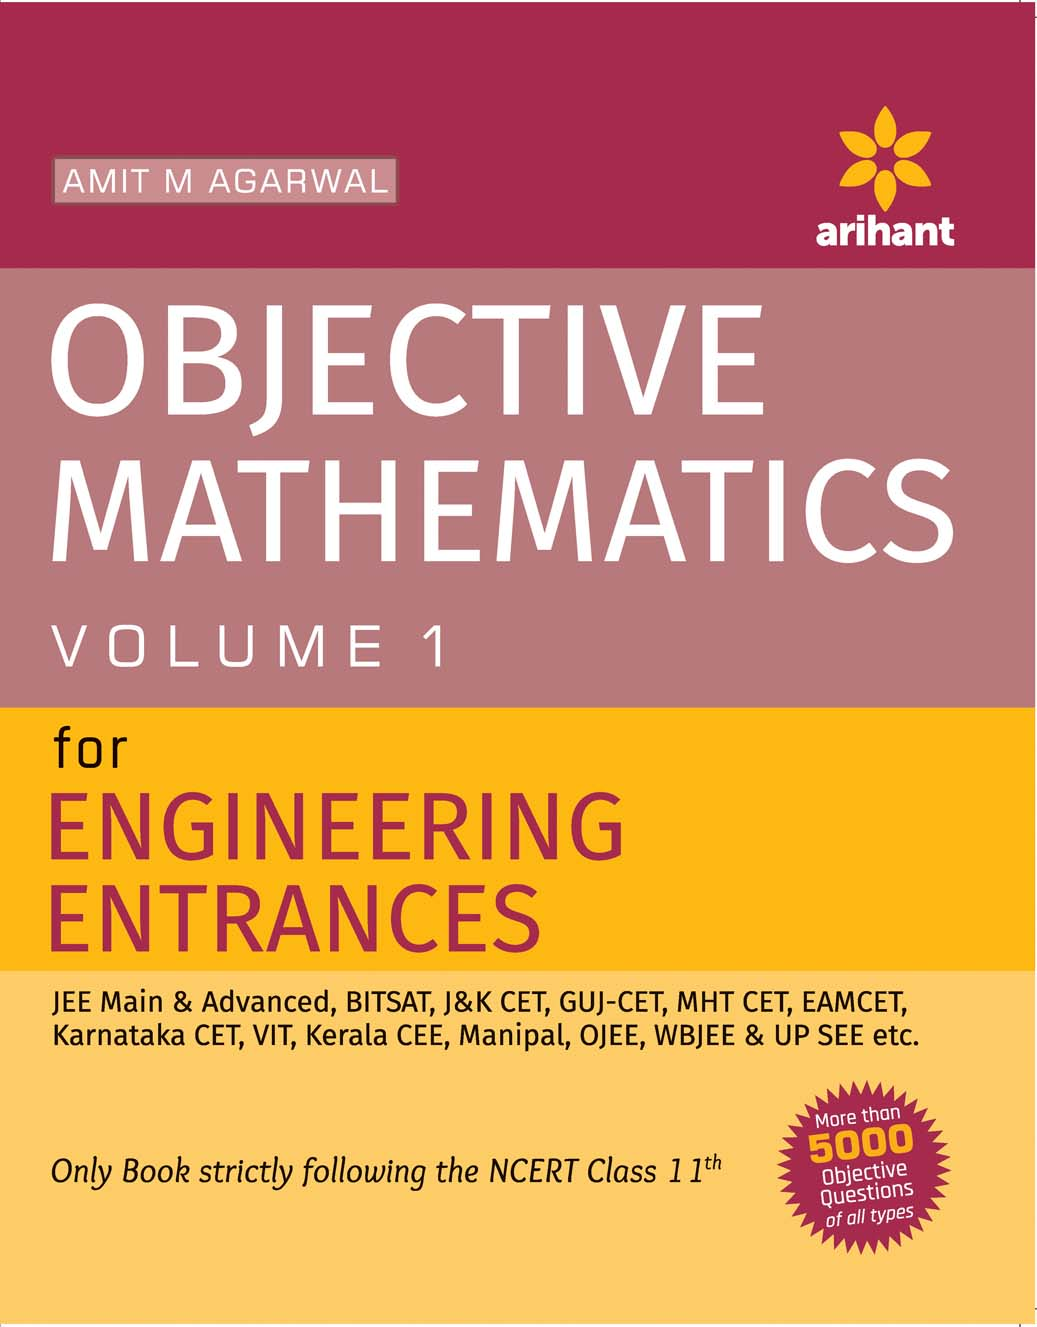 Objective Approach to Mathematics Vol 1 For JEE Main & Advanced by Amit M Agarwal on Textnook.com